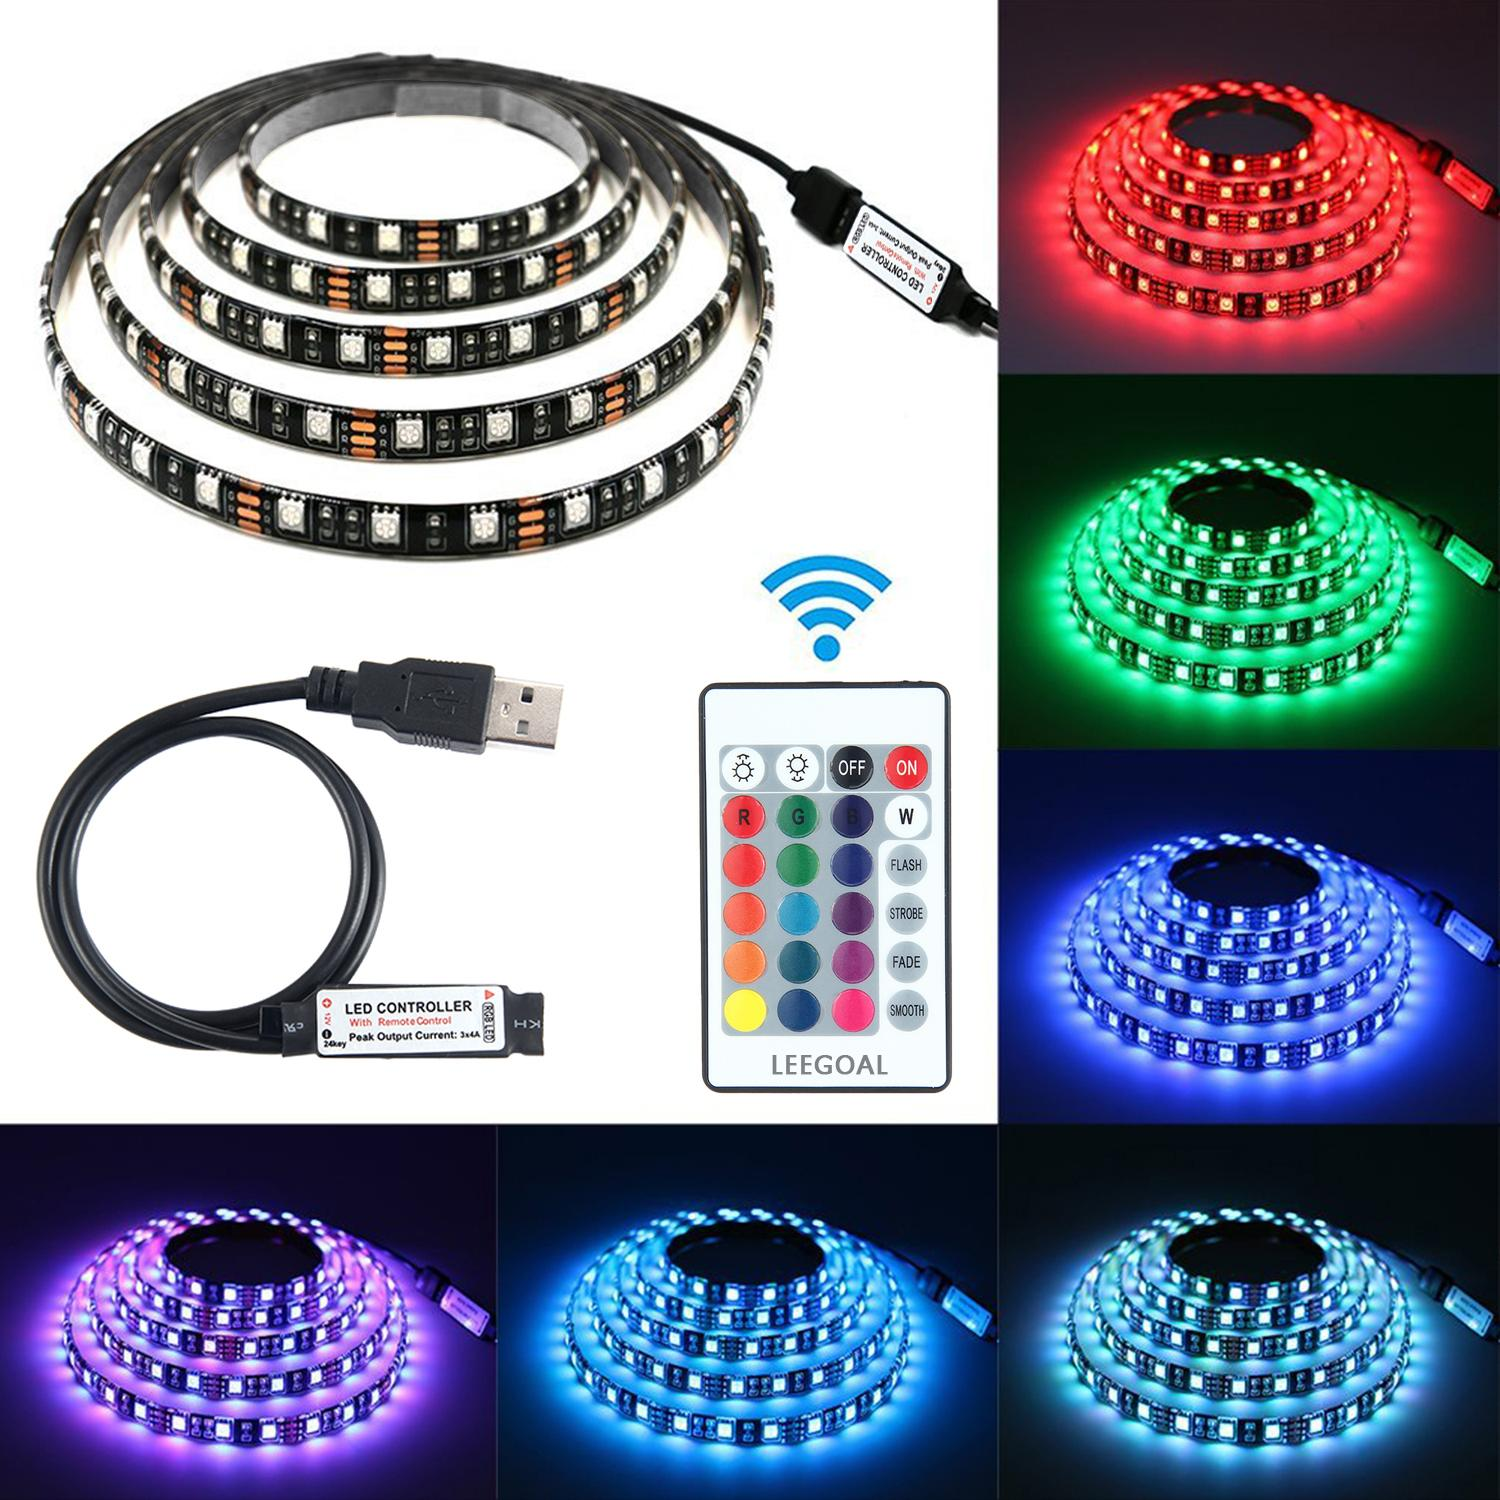 leegoal Bias Lighting, RGB LED Light Strip TV Backlight USB Strips Flexible Waterproof LED Lamp with 24 Keys Remote Controller for HDTV,Desktop PC,Home Theater